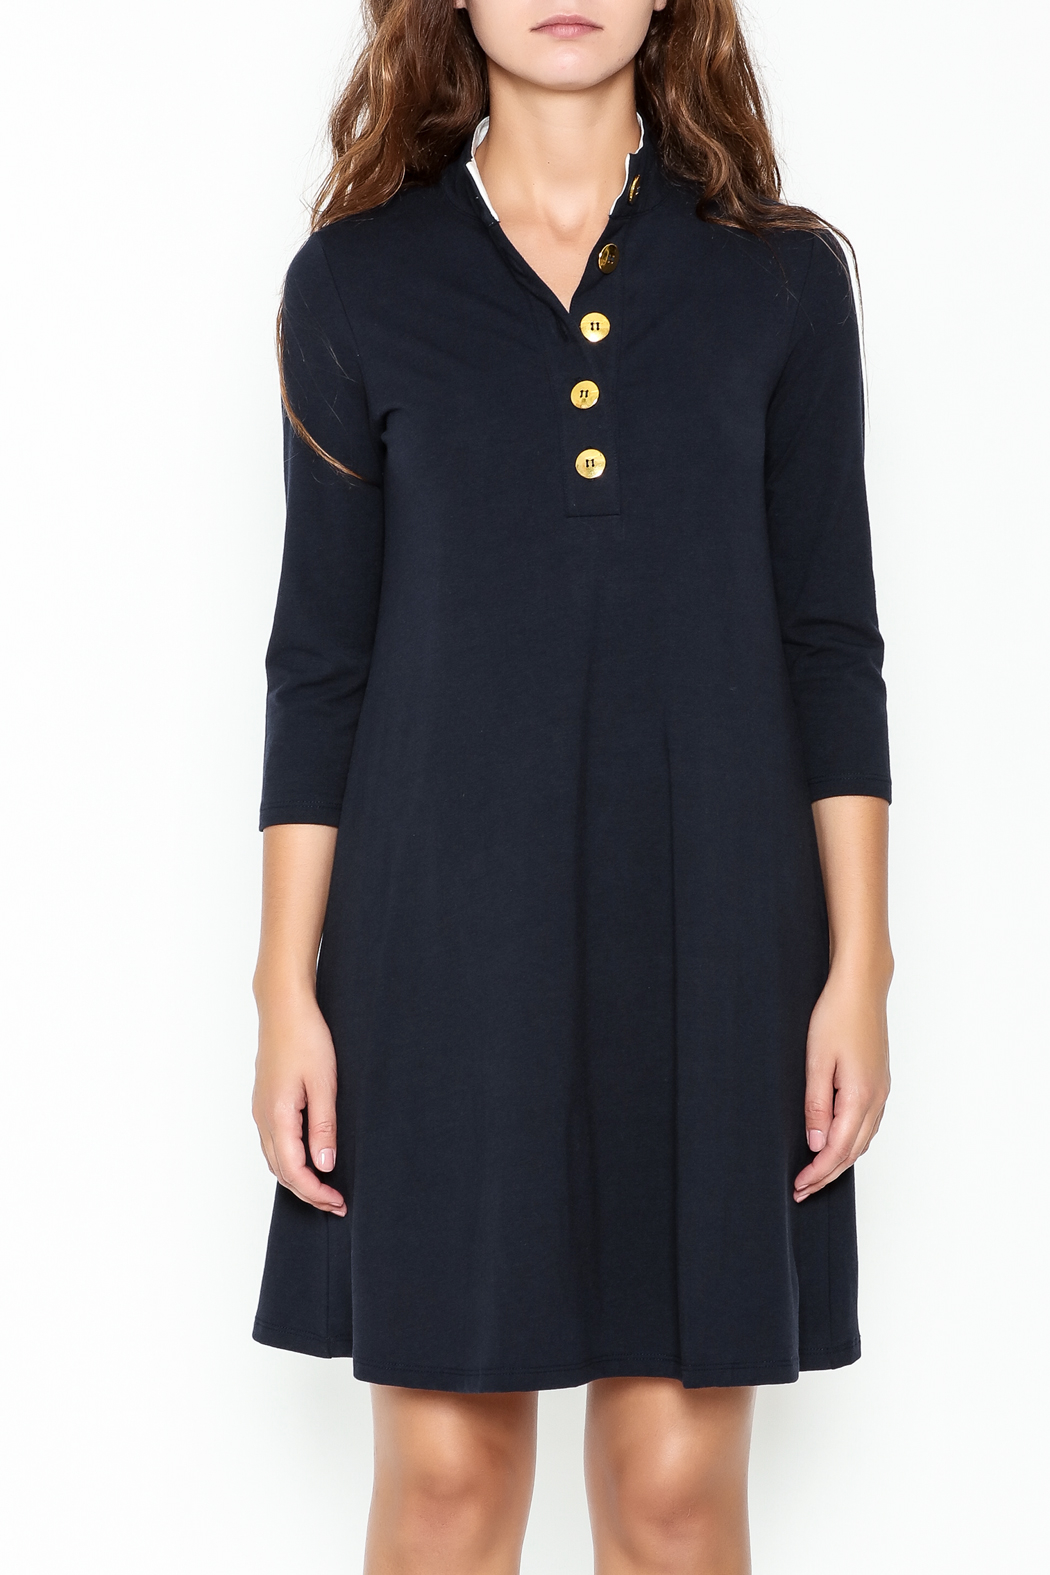 Duffield Lane Kingsley Henley Dress - Front Full Image